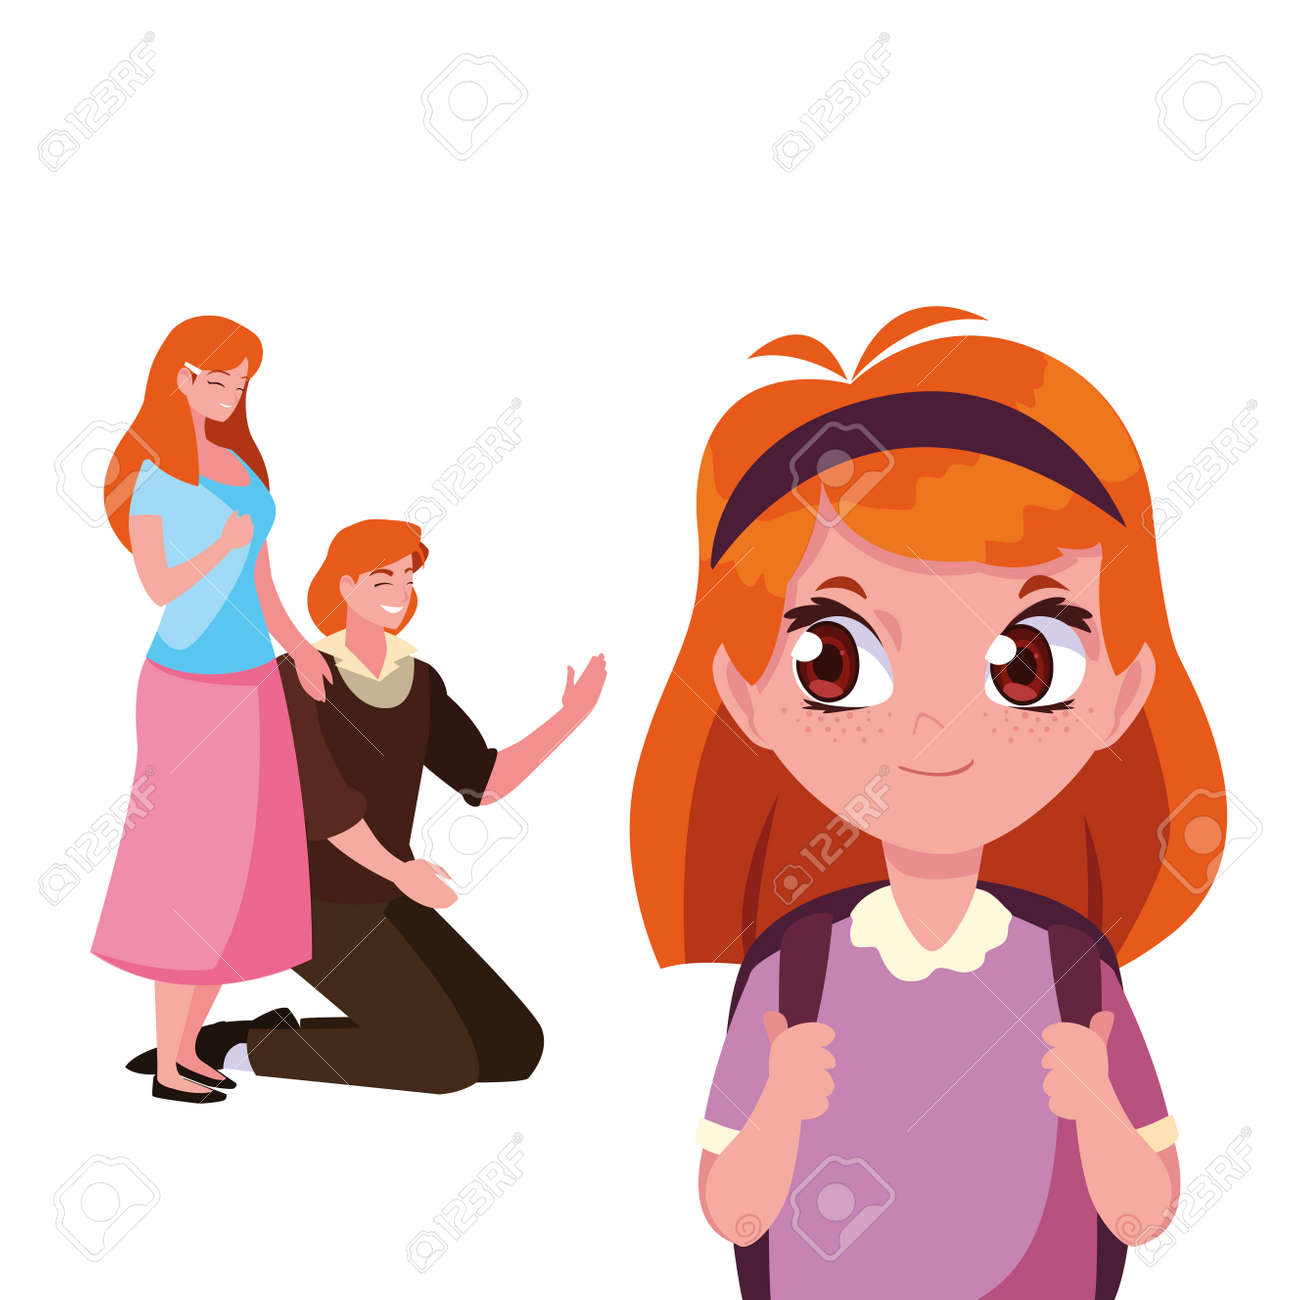 parents with school girl student vector illustration - 154617376